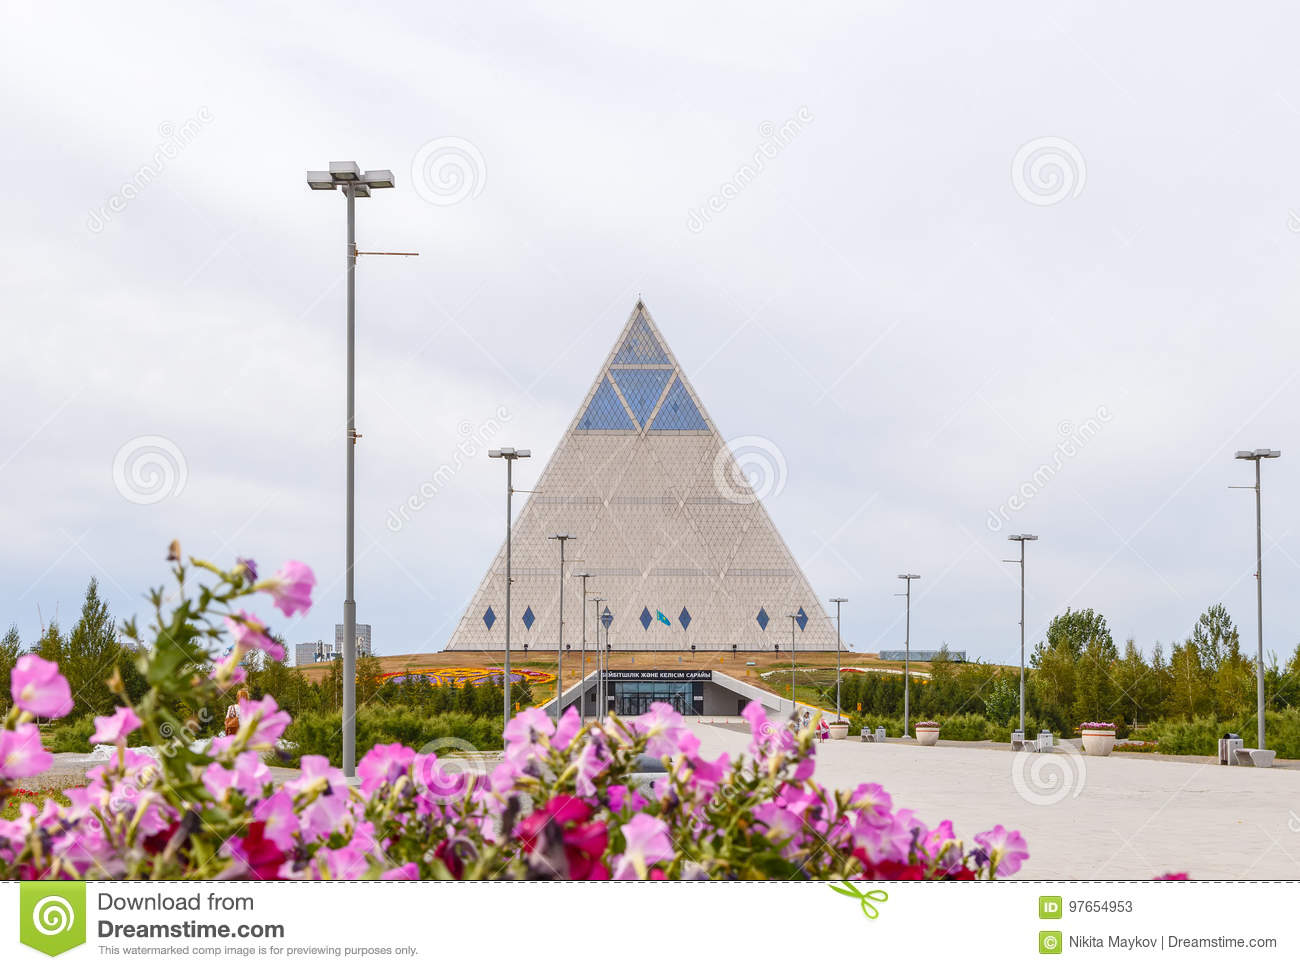 Astana, Kazakhstan - September 3, 2016: Palace of Peace and Reconciliation on the background of clouds